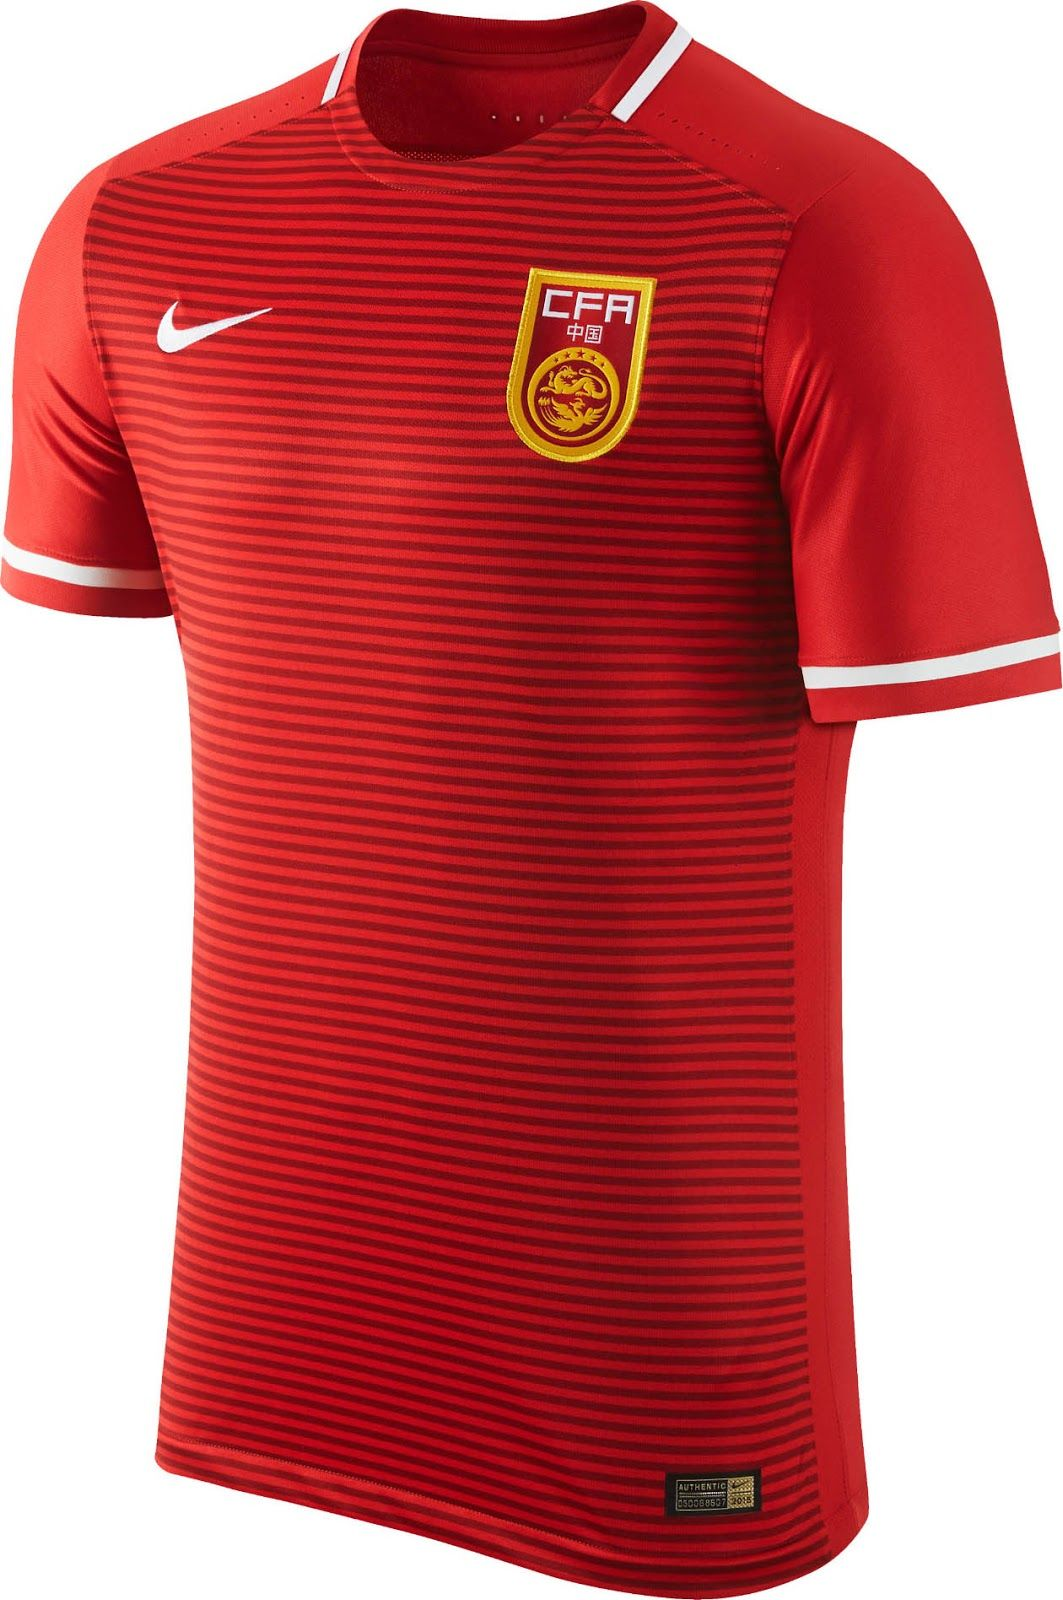 834be7e99 Nike China 2015-2016 Home Kit Released - Footy Headlines